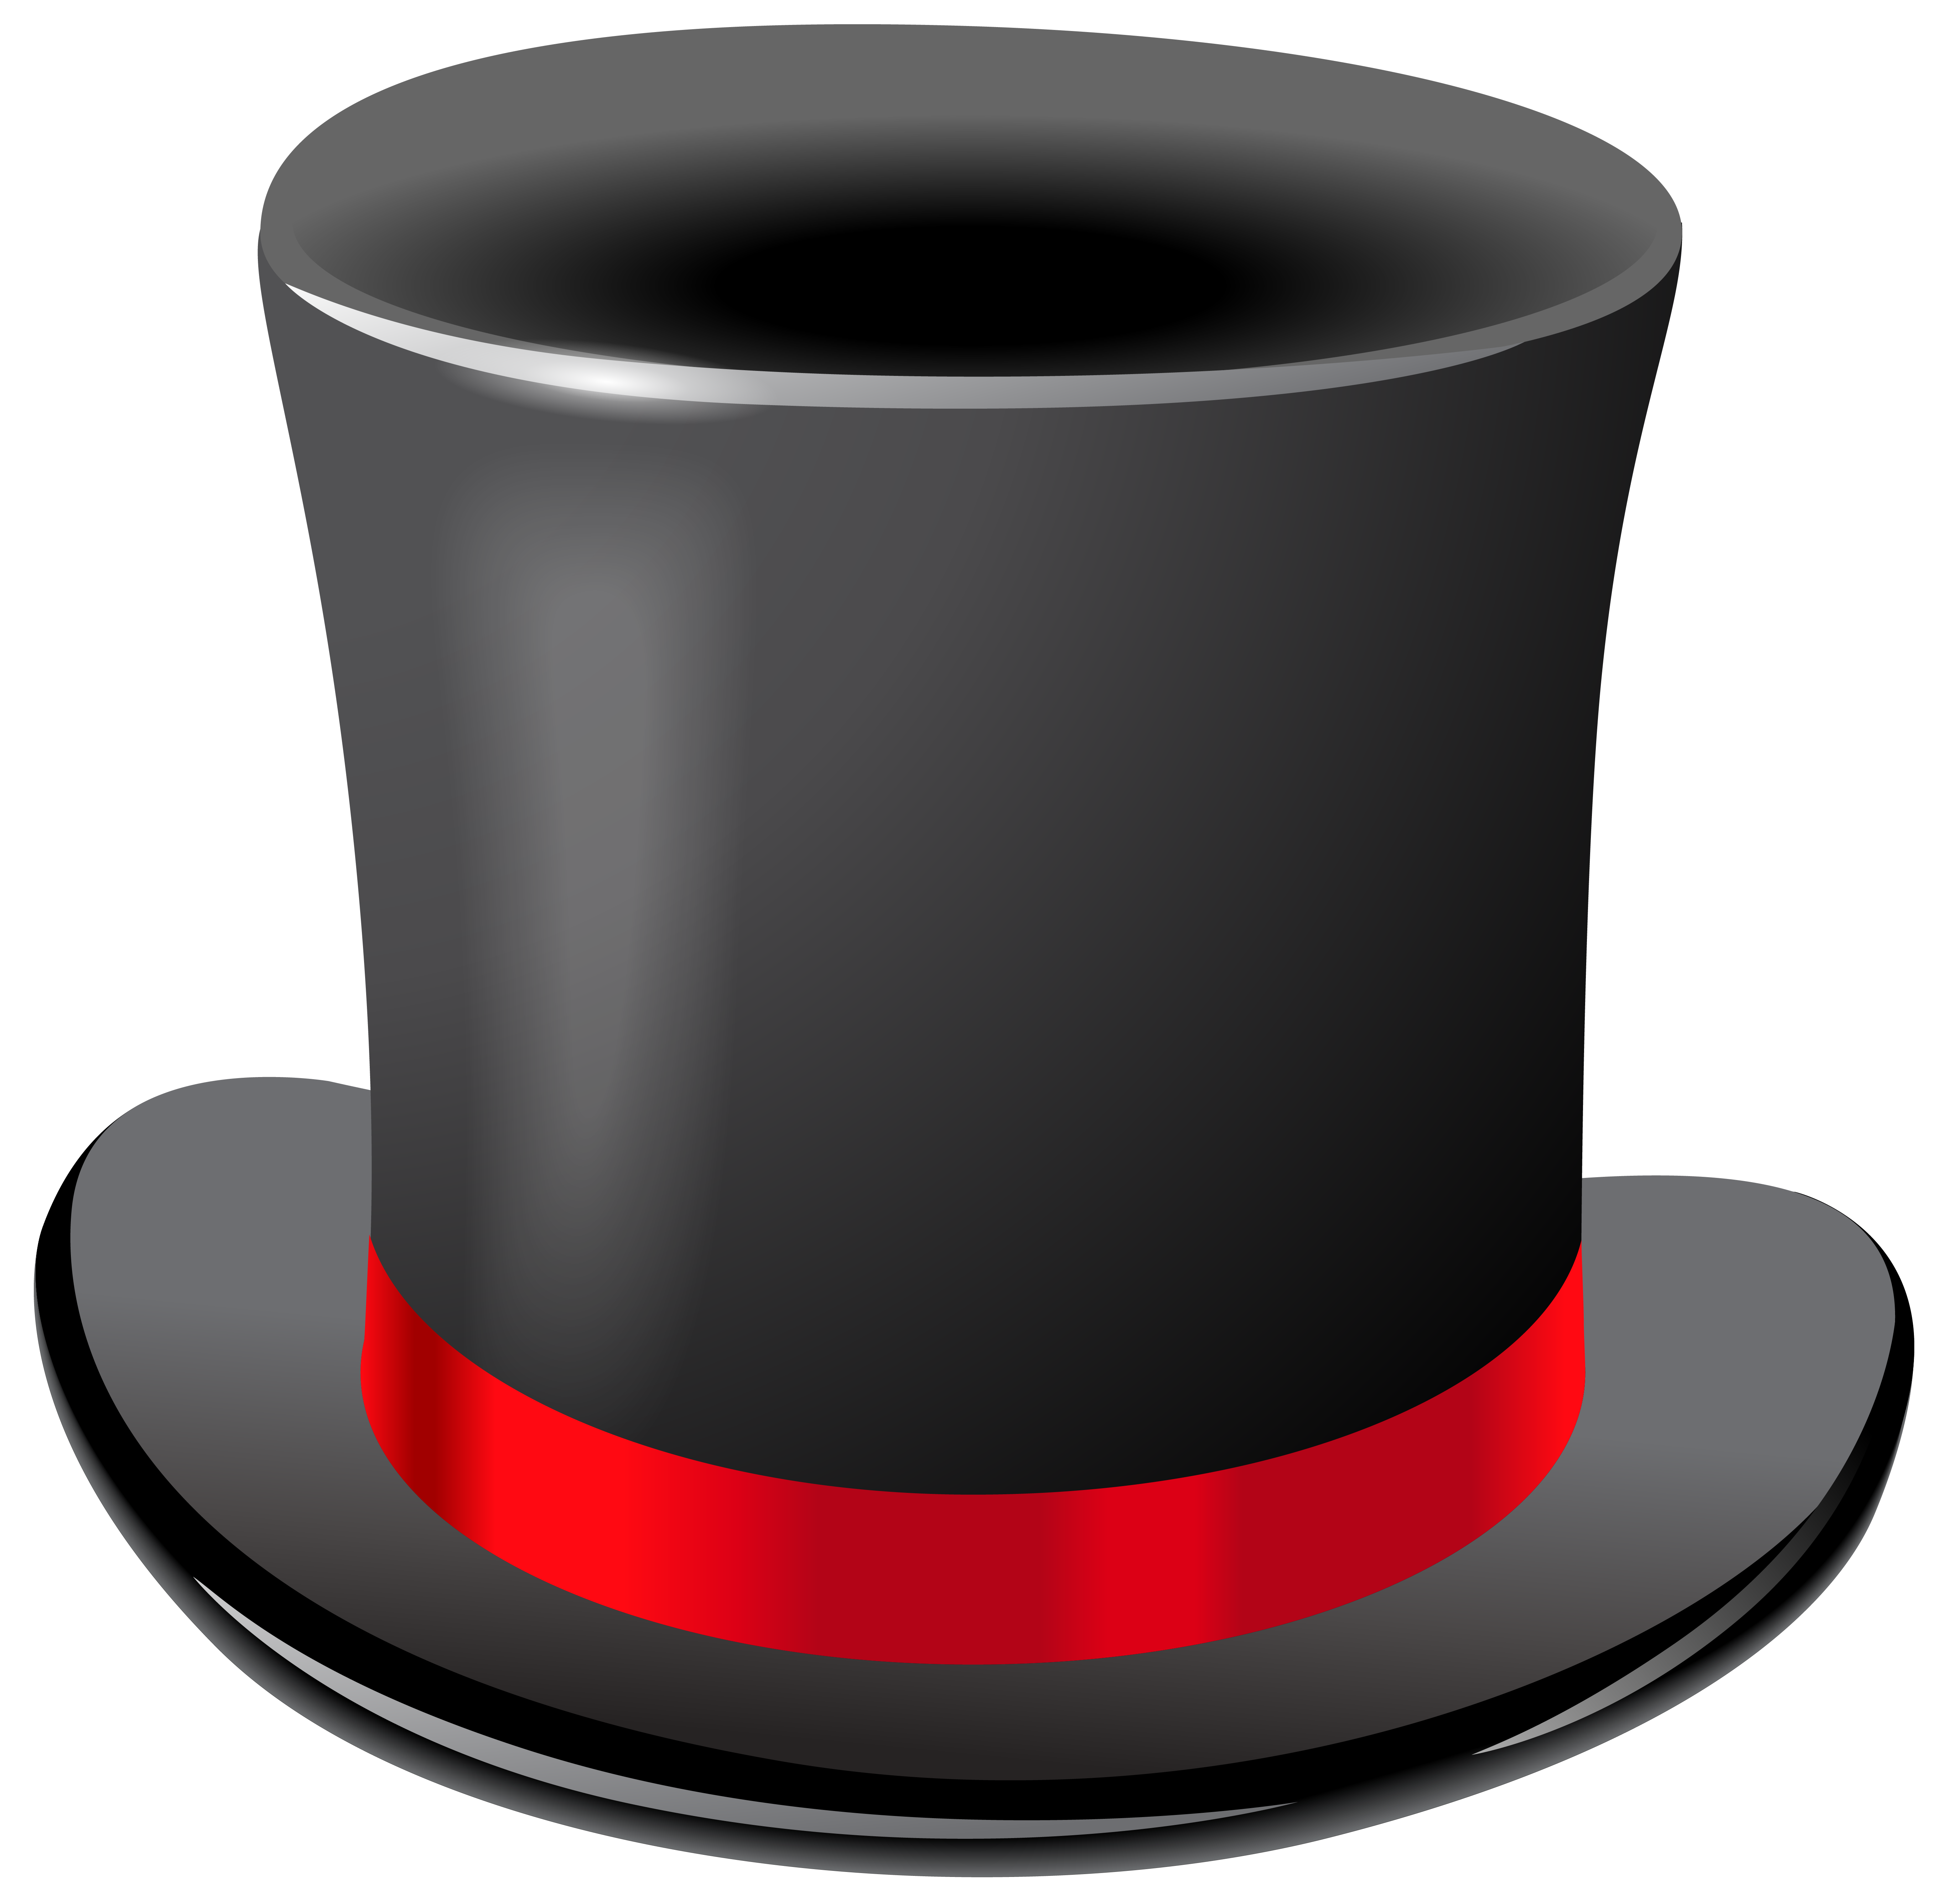 Free Police Hat Transparent, Download Free Clip Art, Free.